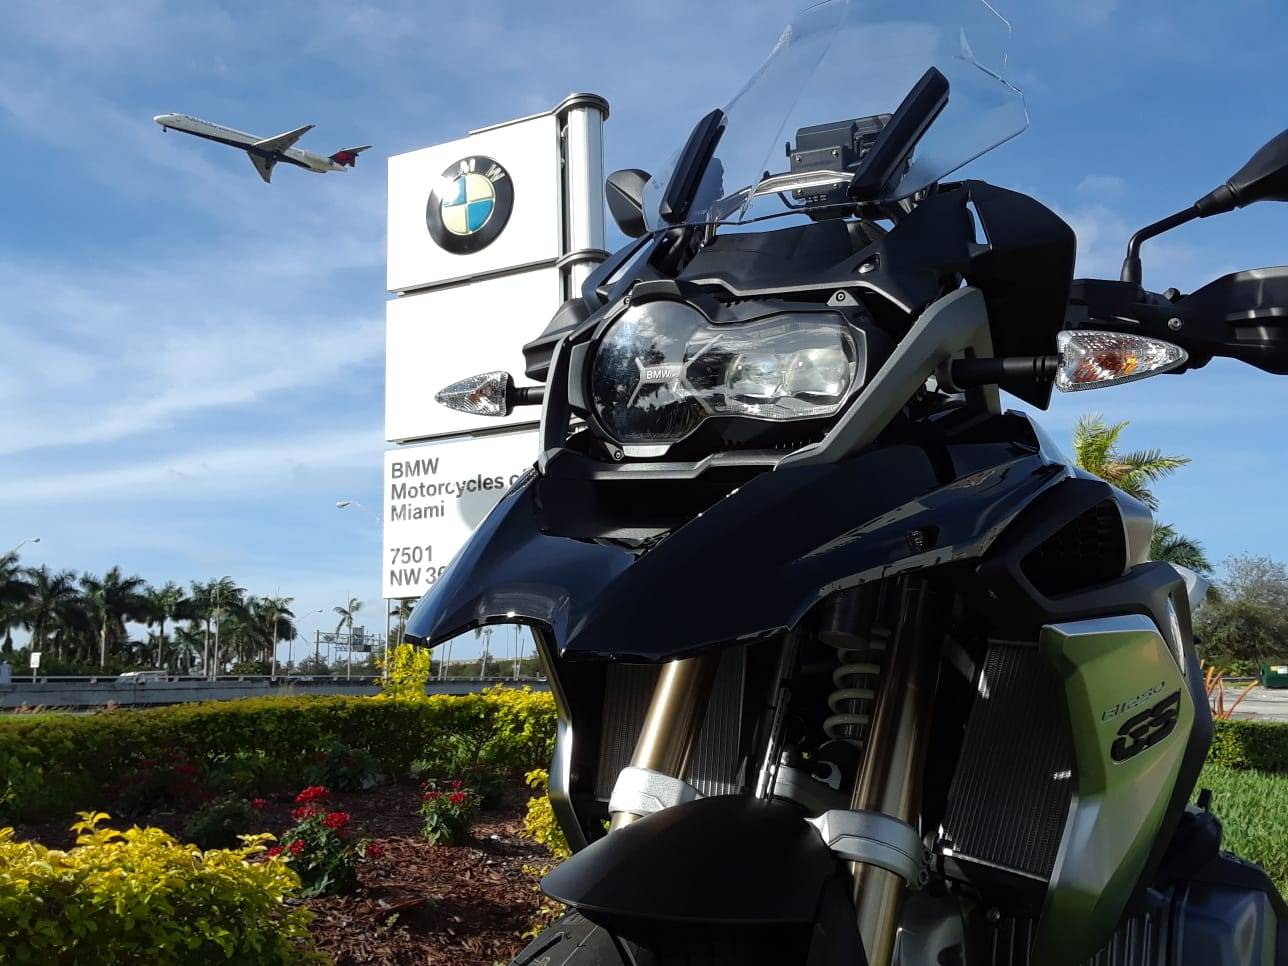 New 2019 BMW R 1250 GS for sale, New BMW for sale R 1250GS, new BMW 1250GS, R1250GS, GS. BMW Motorcycles of Miami, Motorcycles of Miami Motorcycles Miami - Photo 31